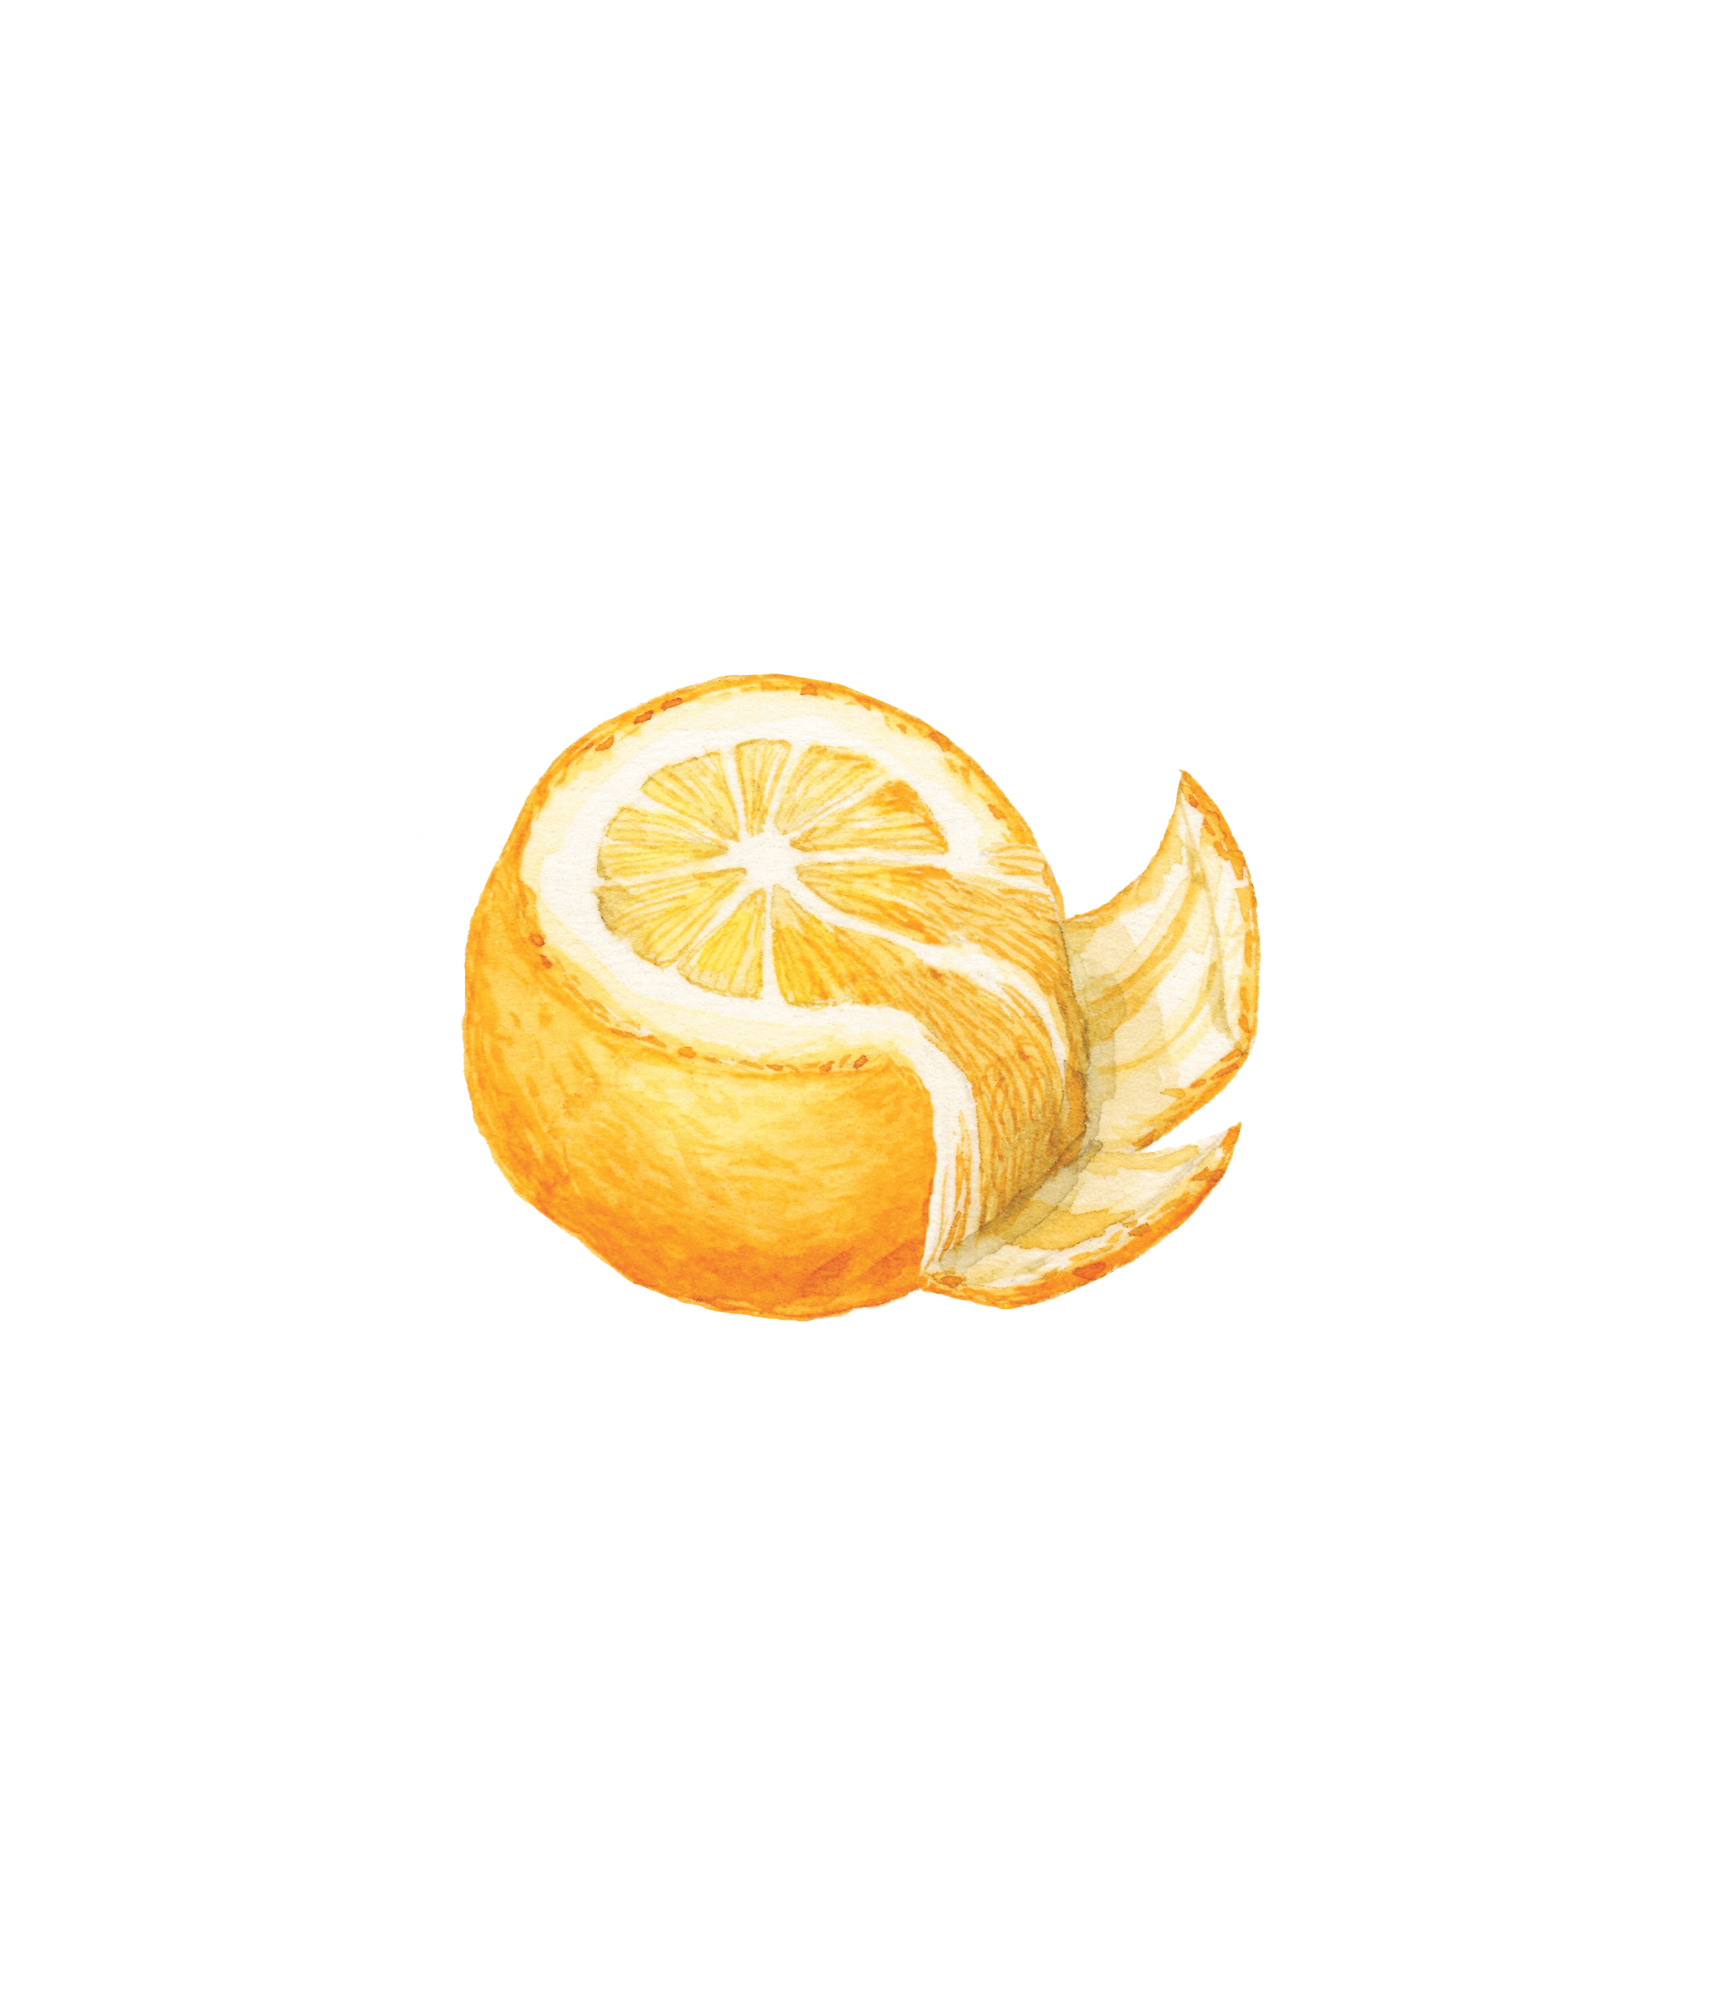 Illustration of how to segment an orange